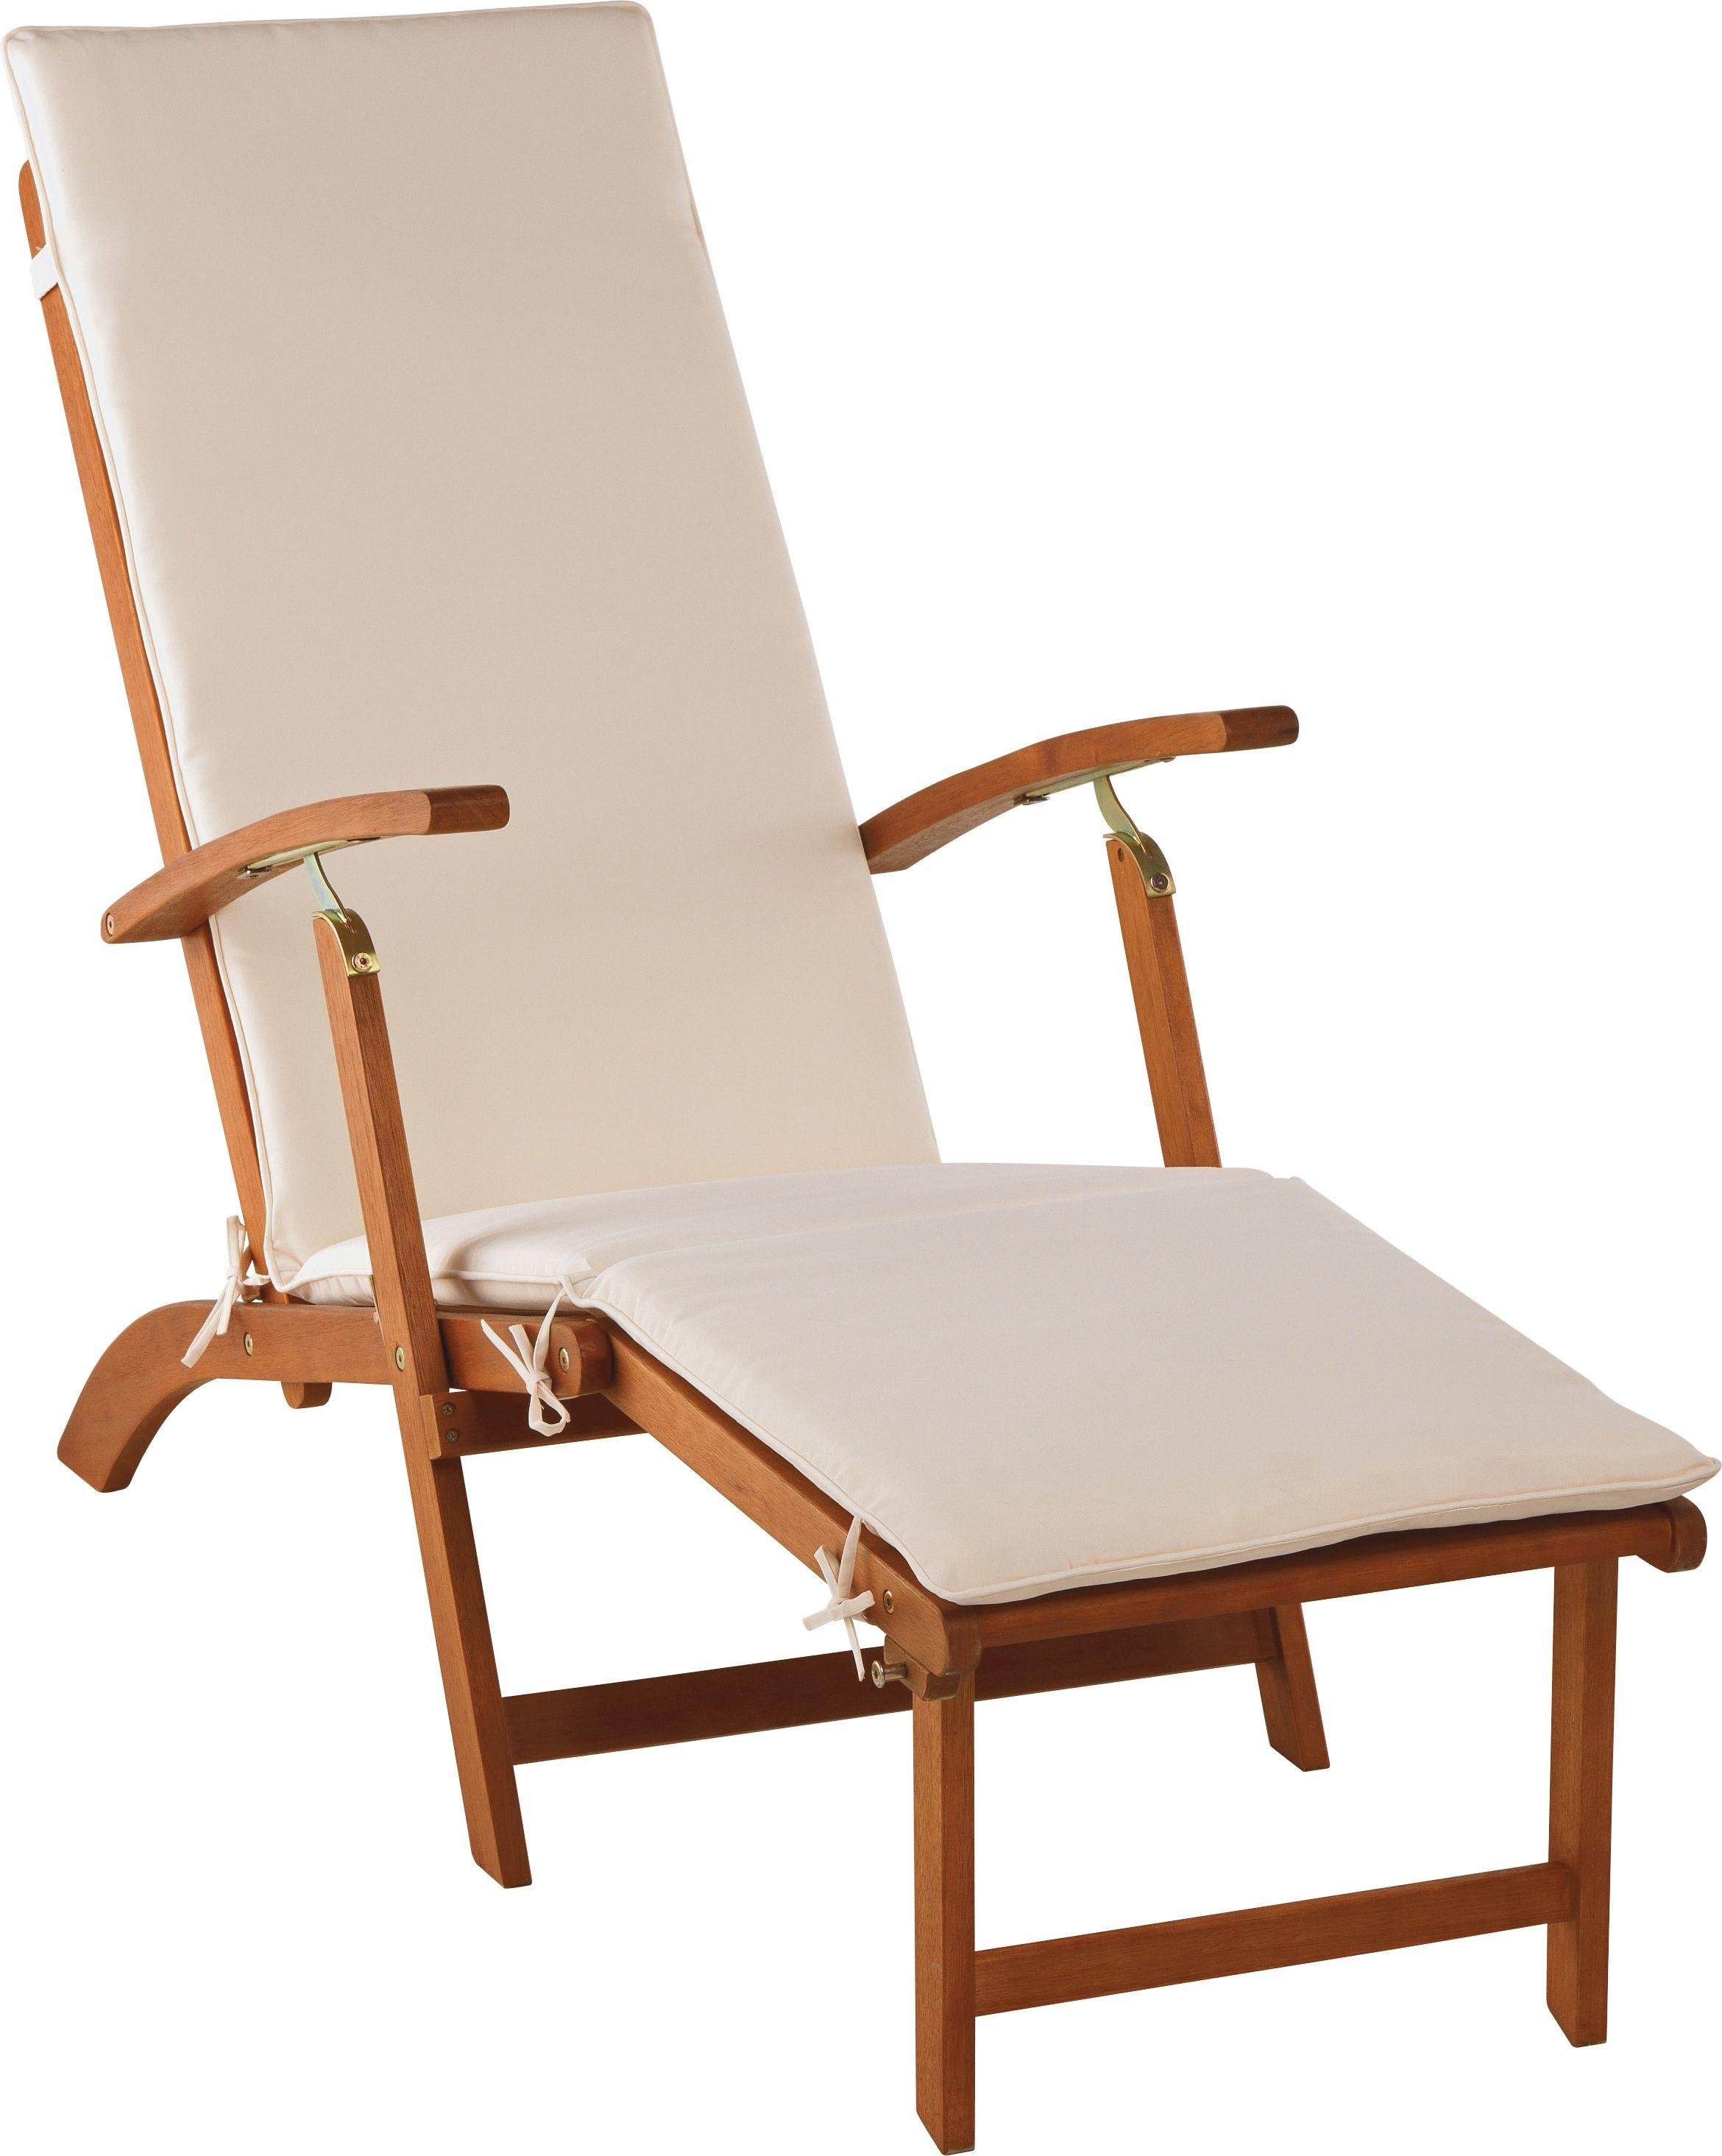 HOME Foldable Multiposition Sun Lounger with Cushion351/3219  sc 1 st  Argos & Buy HOME Foldable Multiposition Sun Lounger with Cushion at Argos ... islam-shia.org